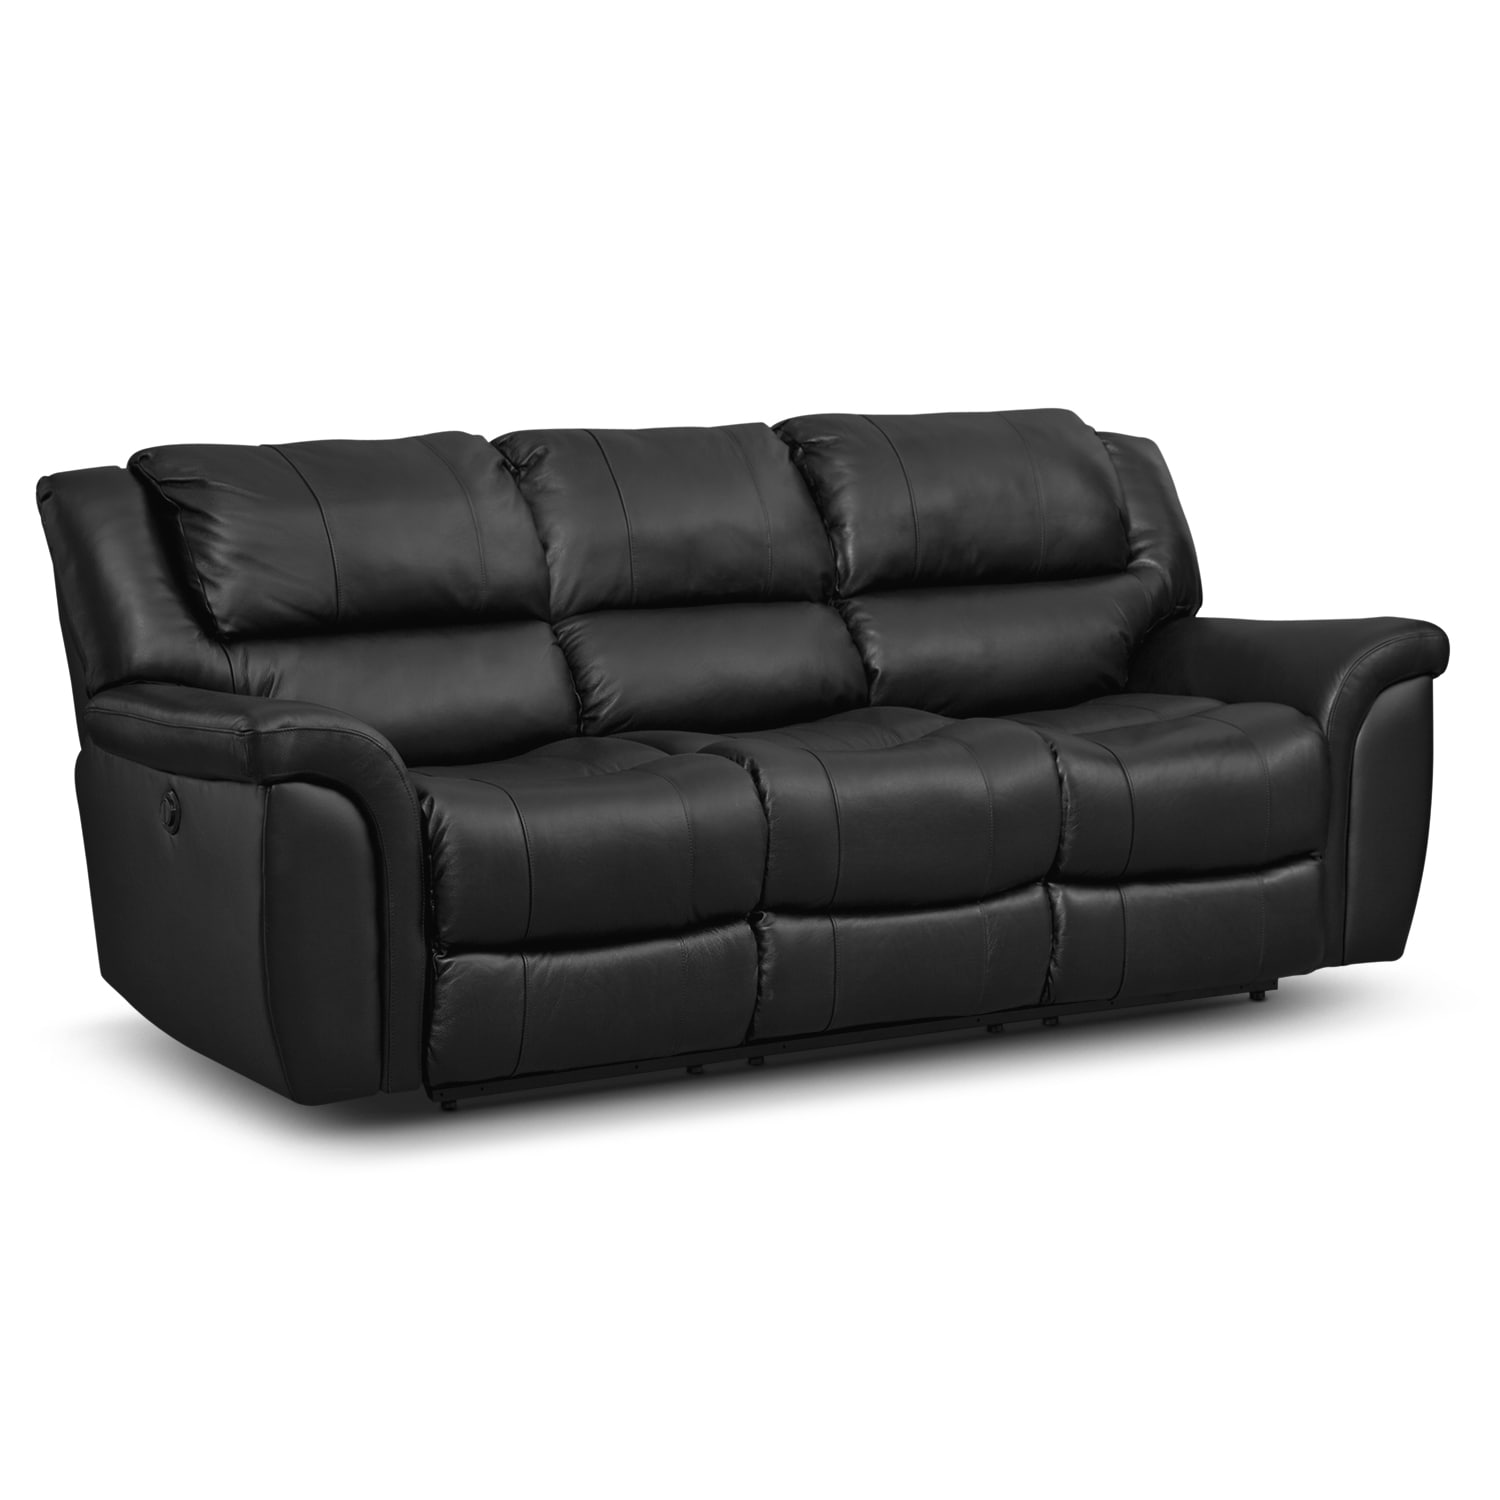 Value city furniture for Leather reclining sofa